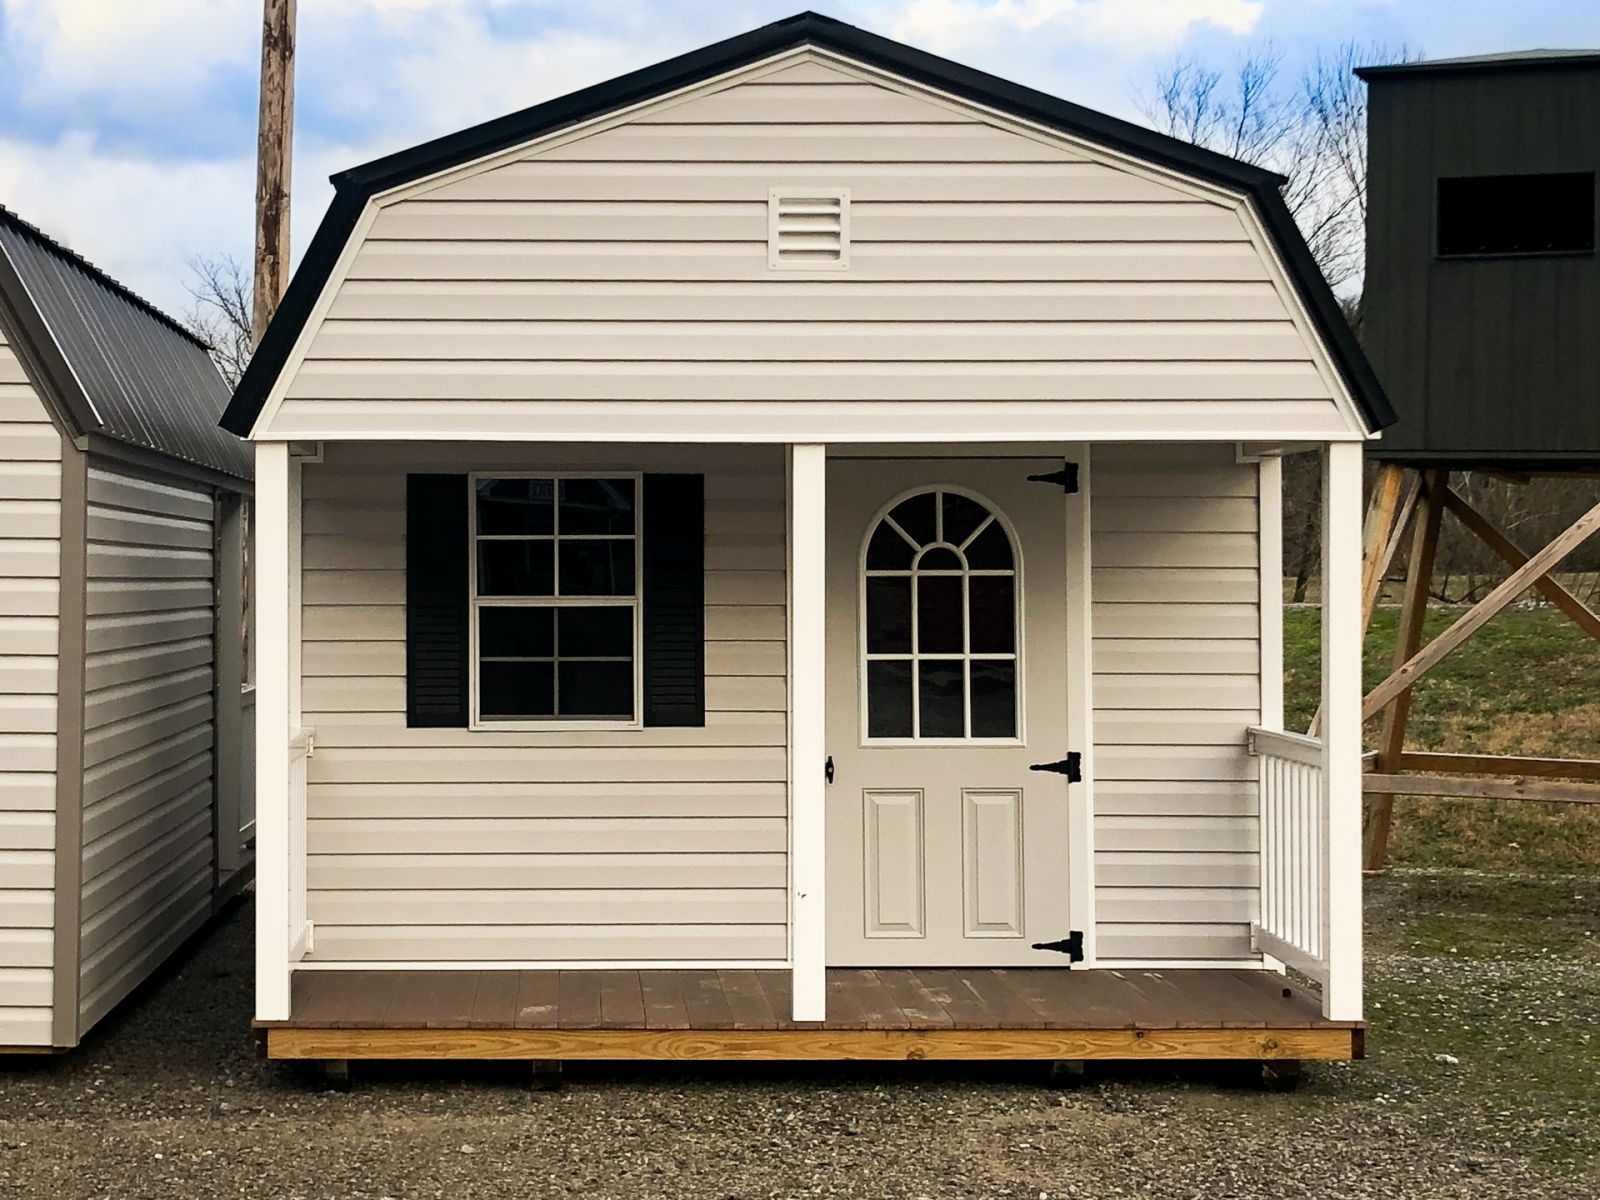 A prefab cabin for sale in Greensburg, KY